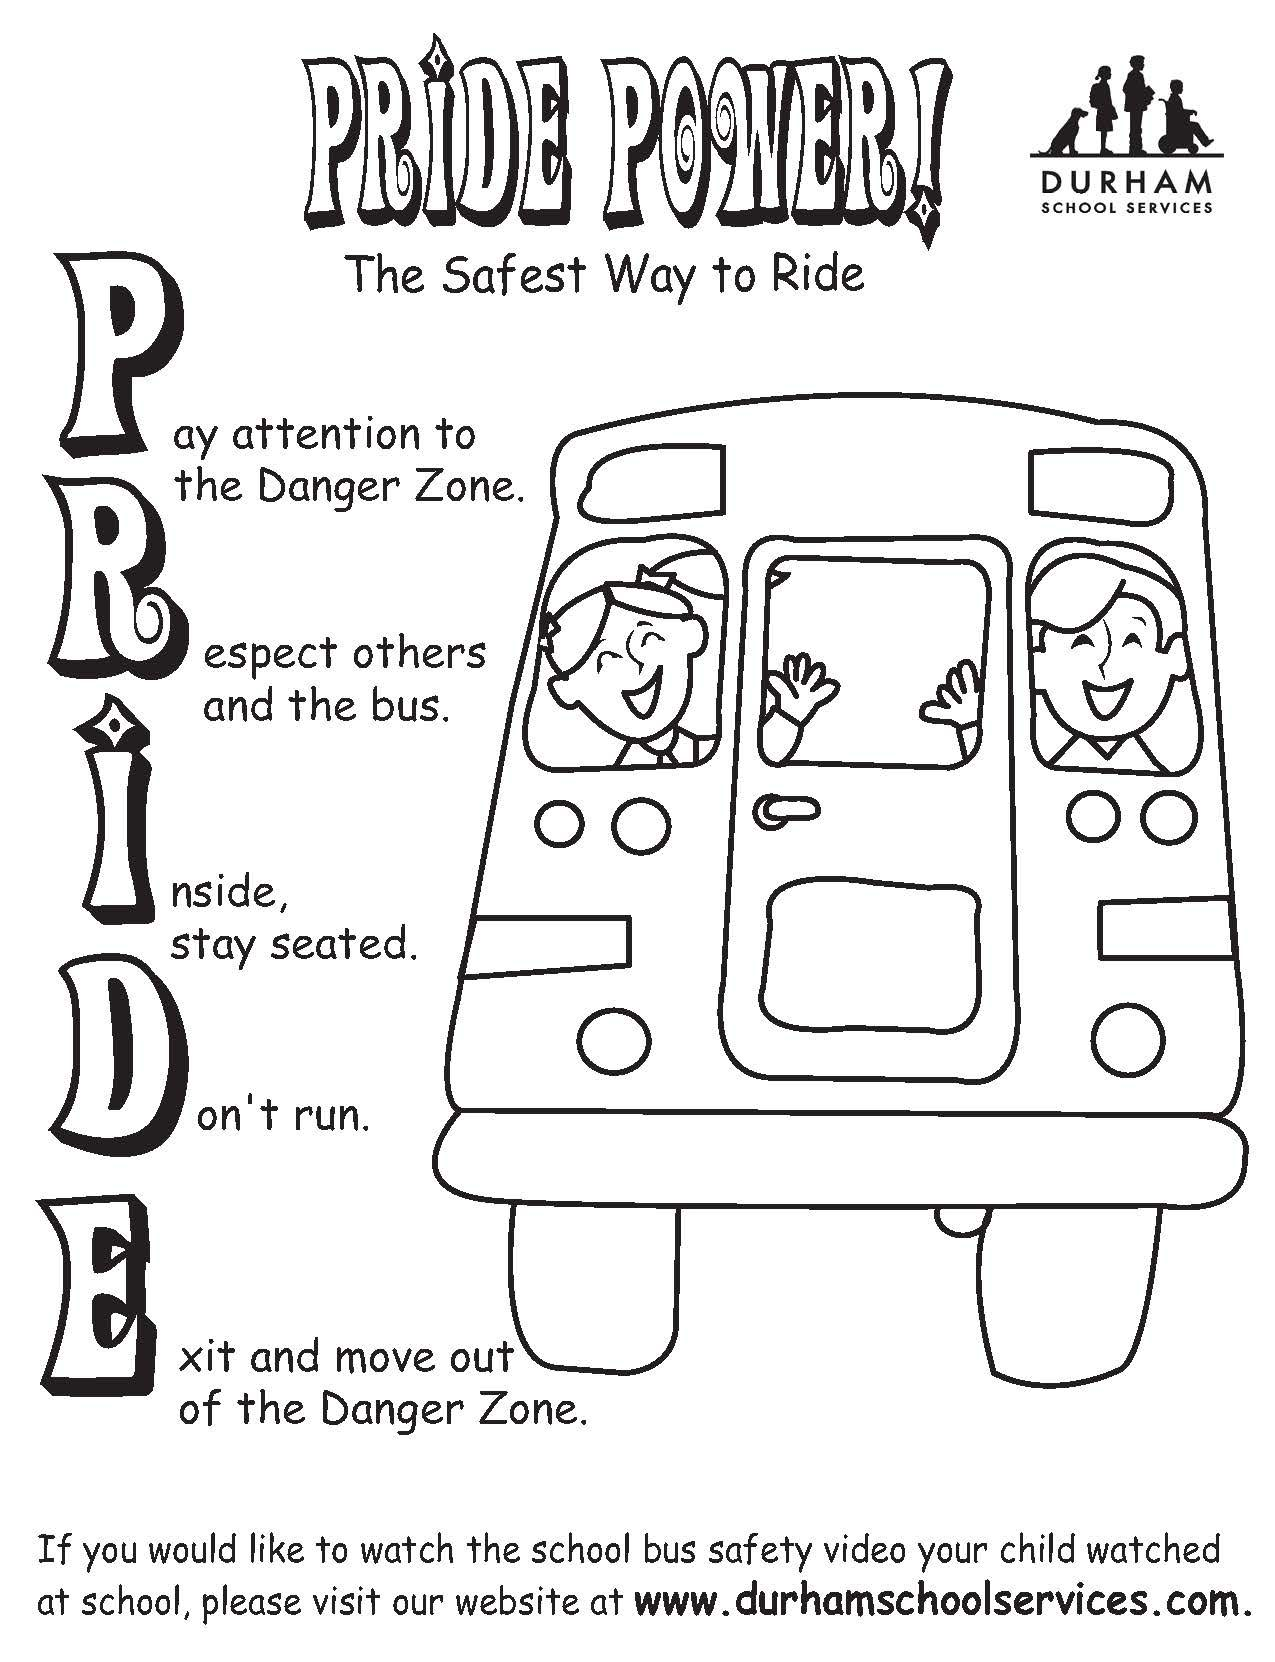 Pride Power Coloring Sheet School Bus Safety KID ZONE